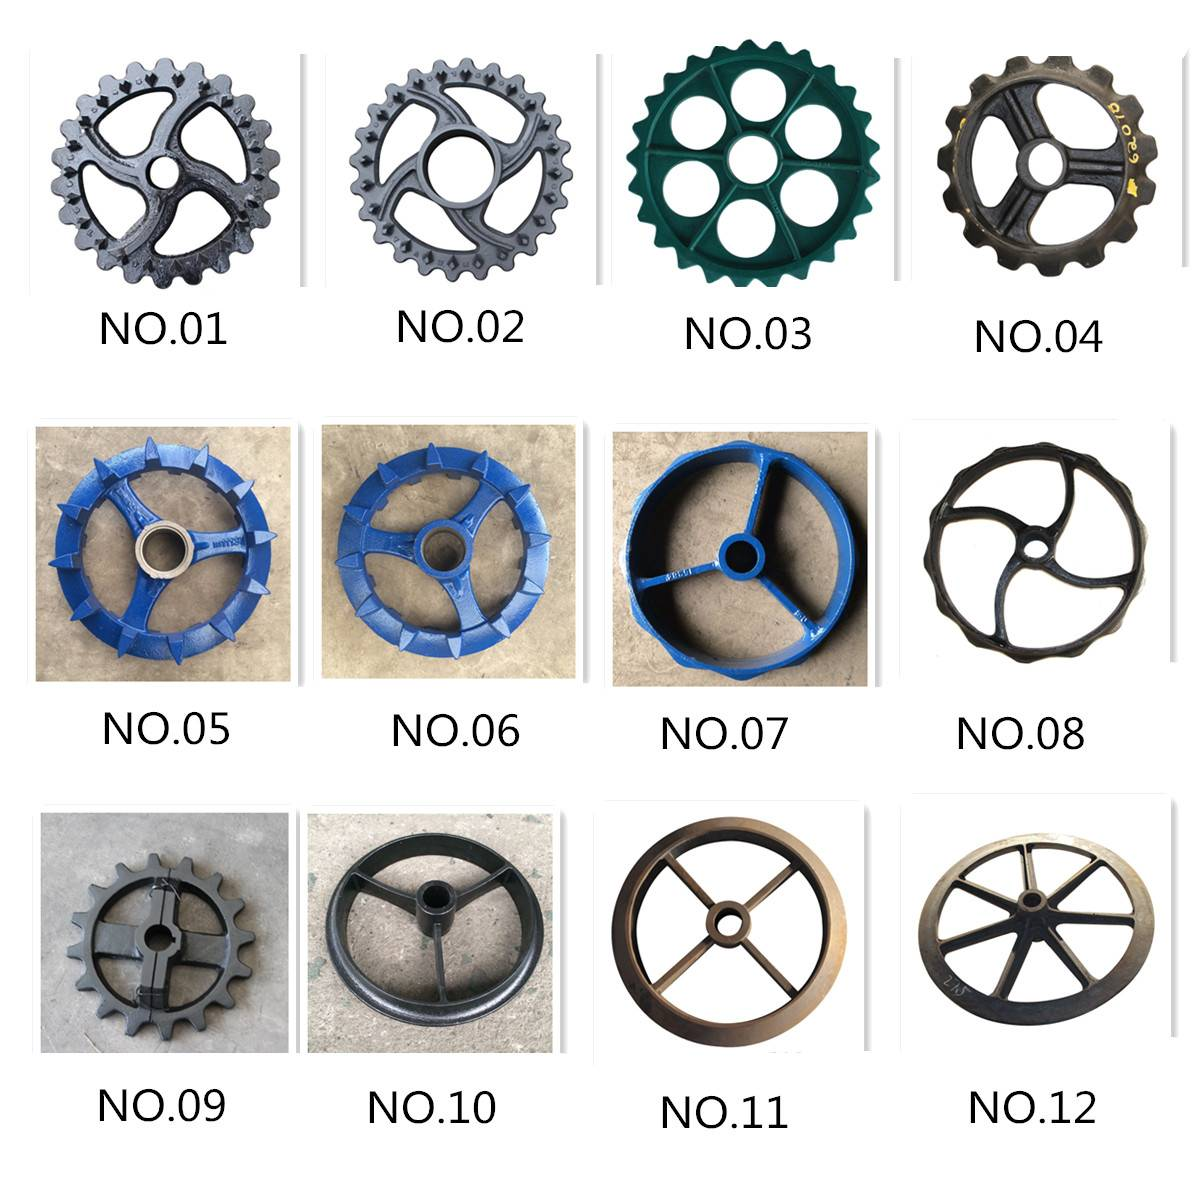 Cambridge Roller Rings / Crosskill Rings / Breaker Rings